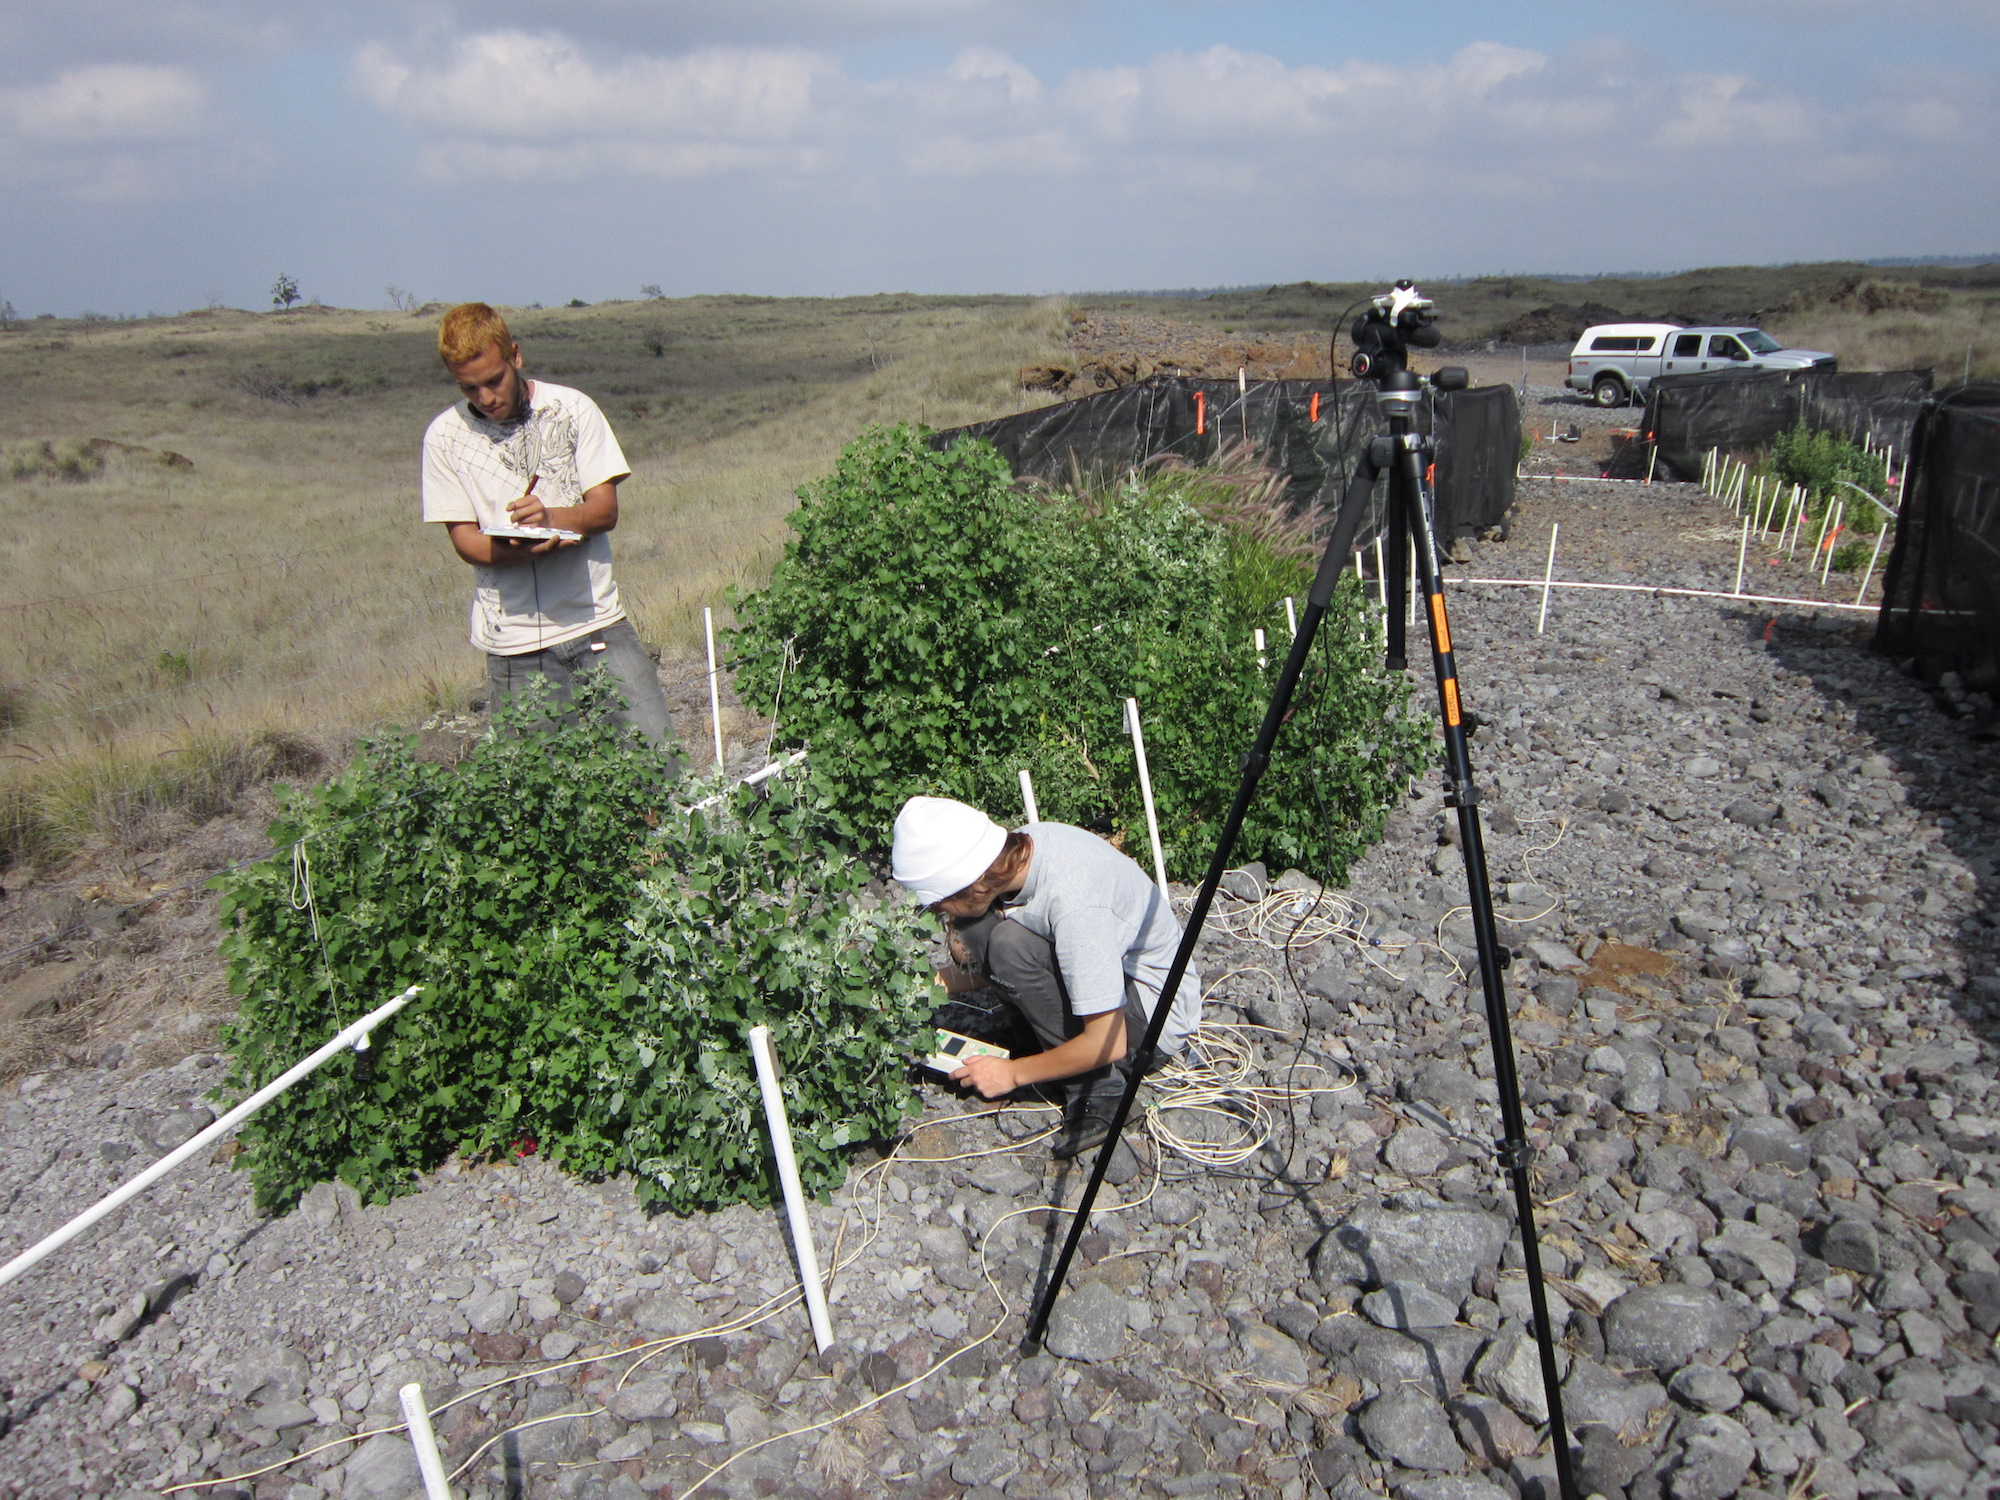 Researchers record observations of the experimental greenstrip plots. Photo: Susan Cordell